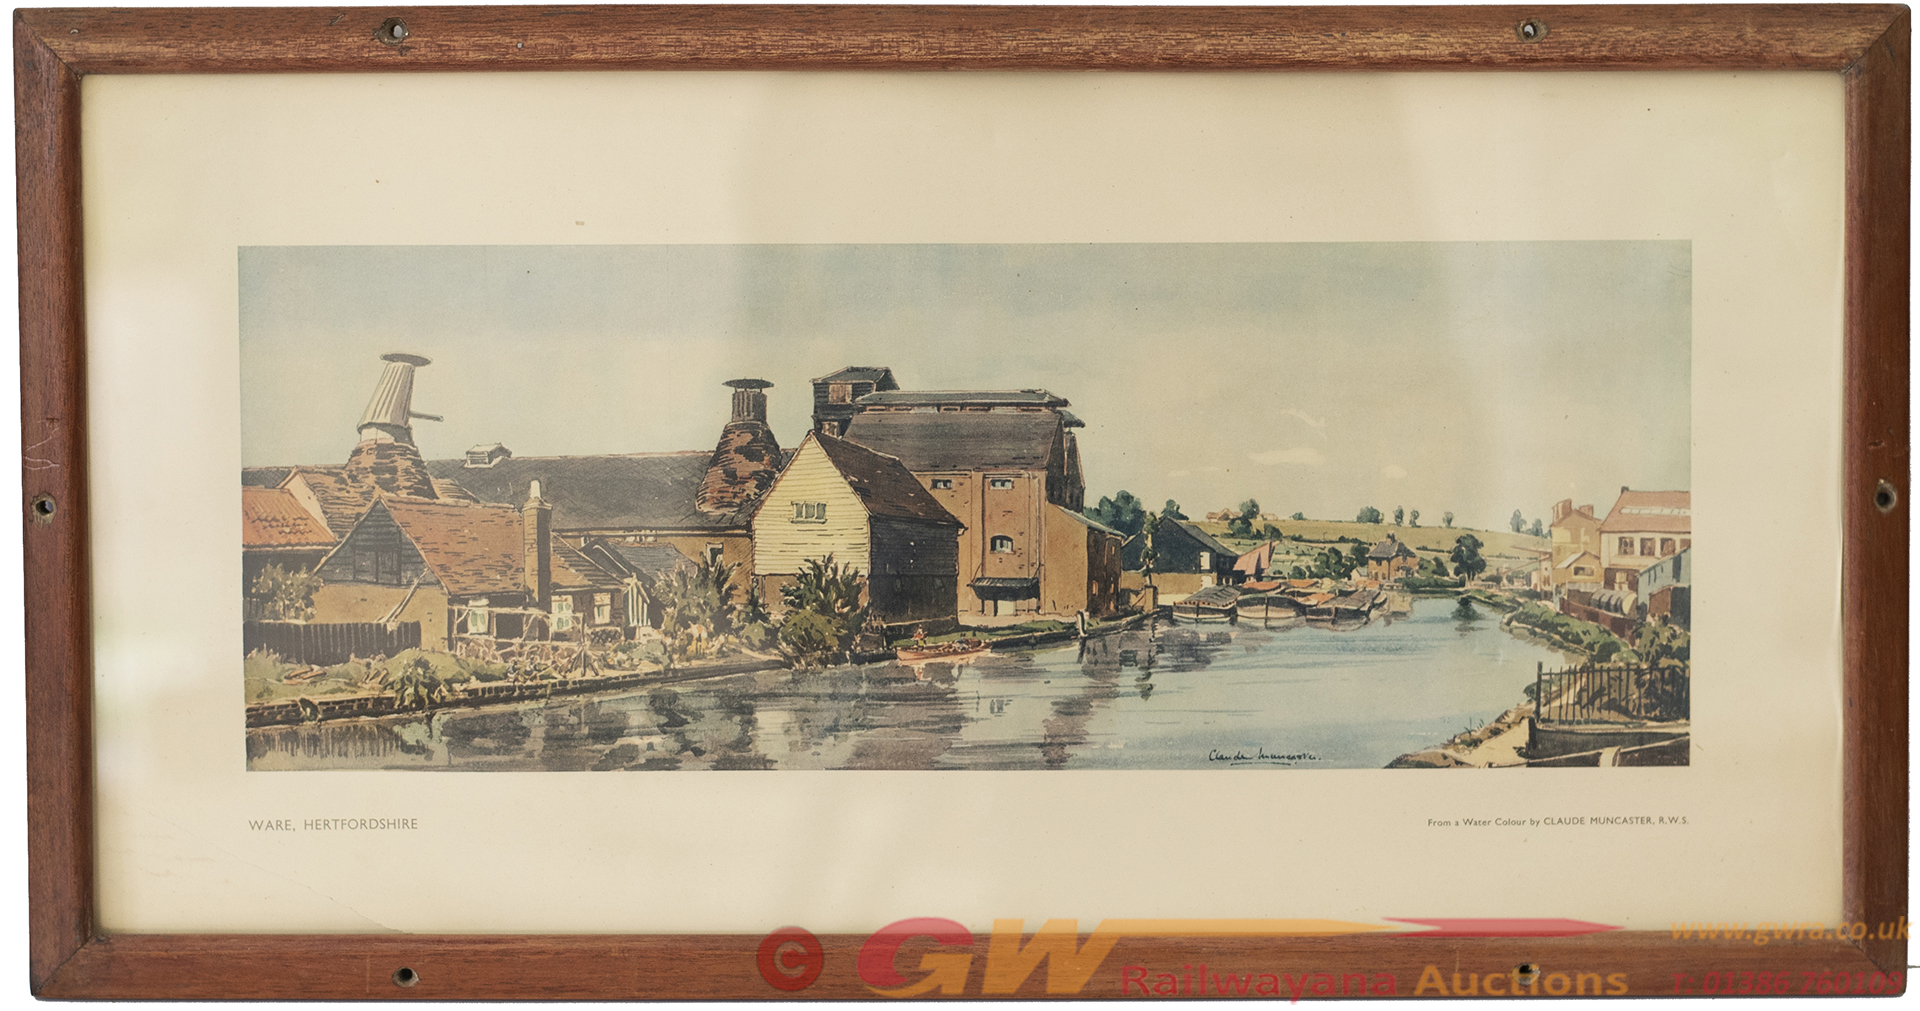 Carriage Print WARE, HERTFORDSHIRE By Claude